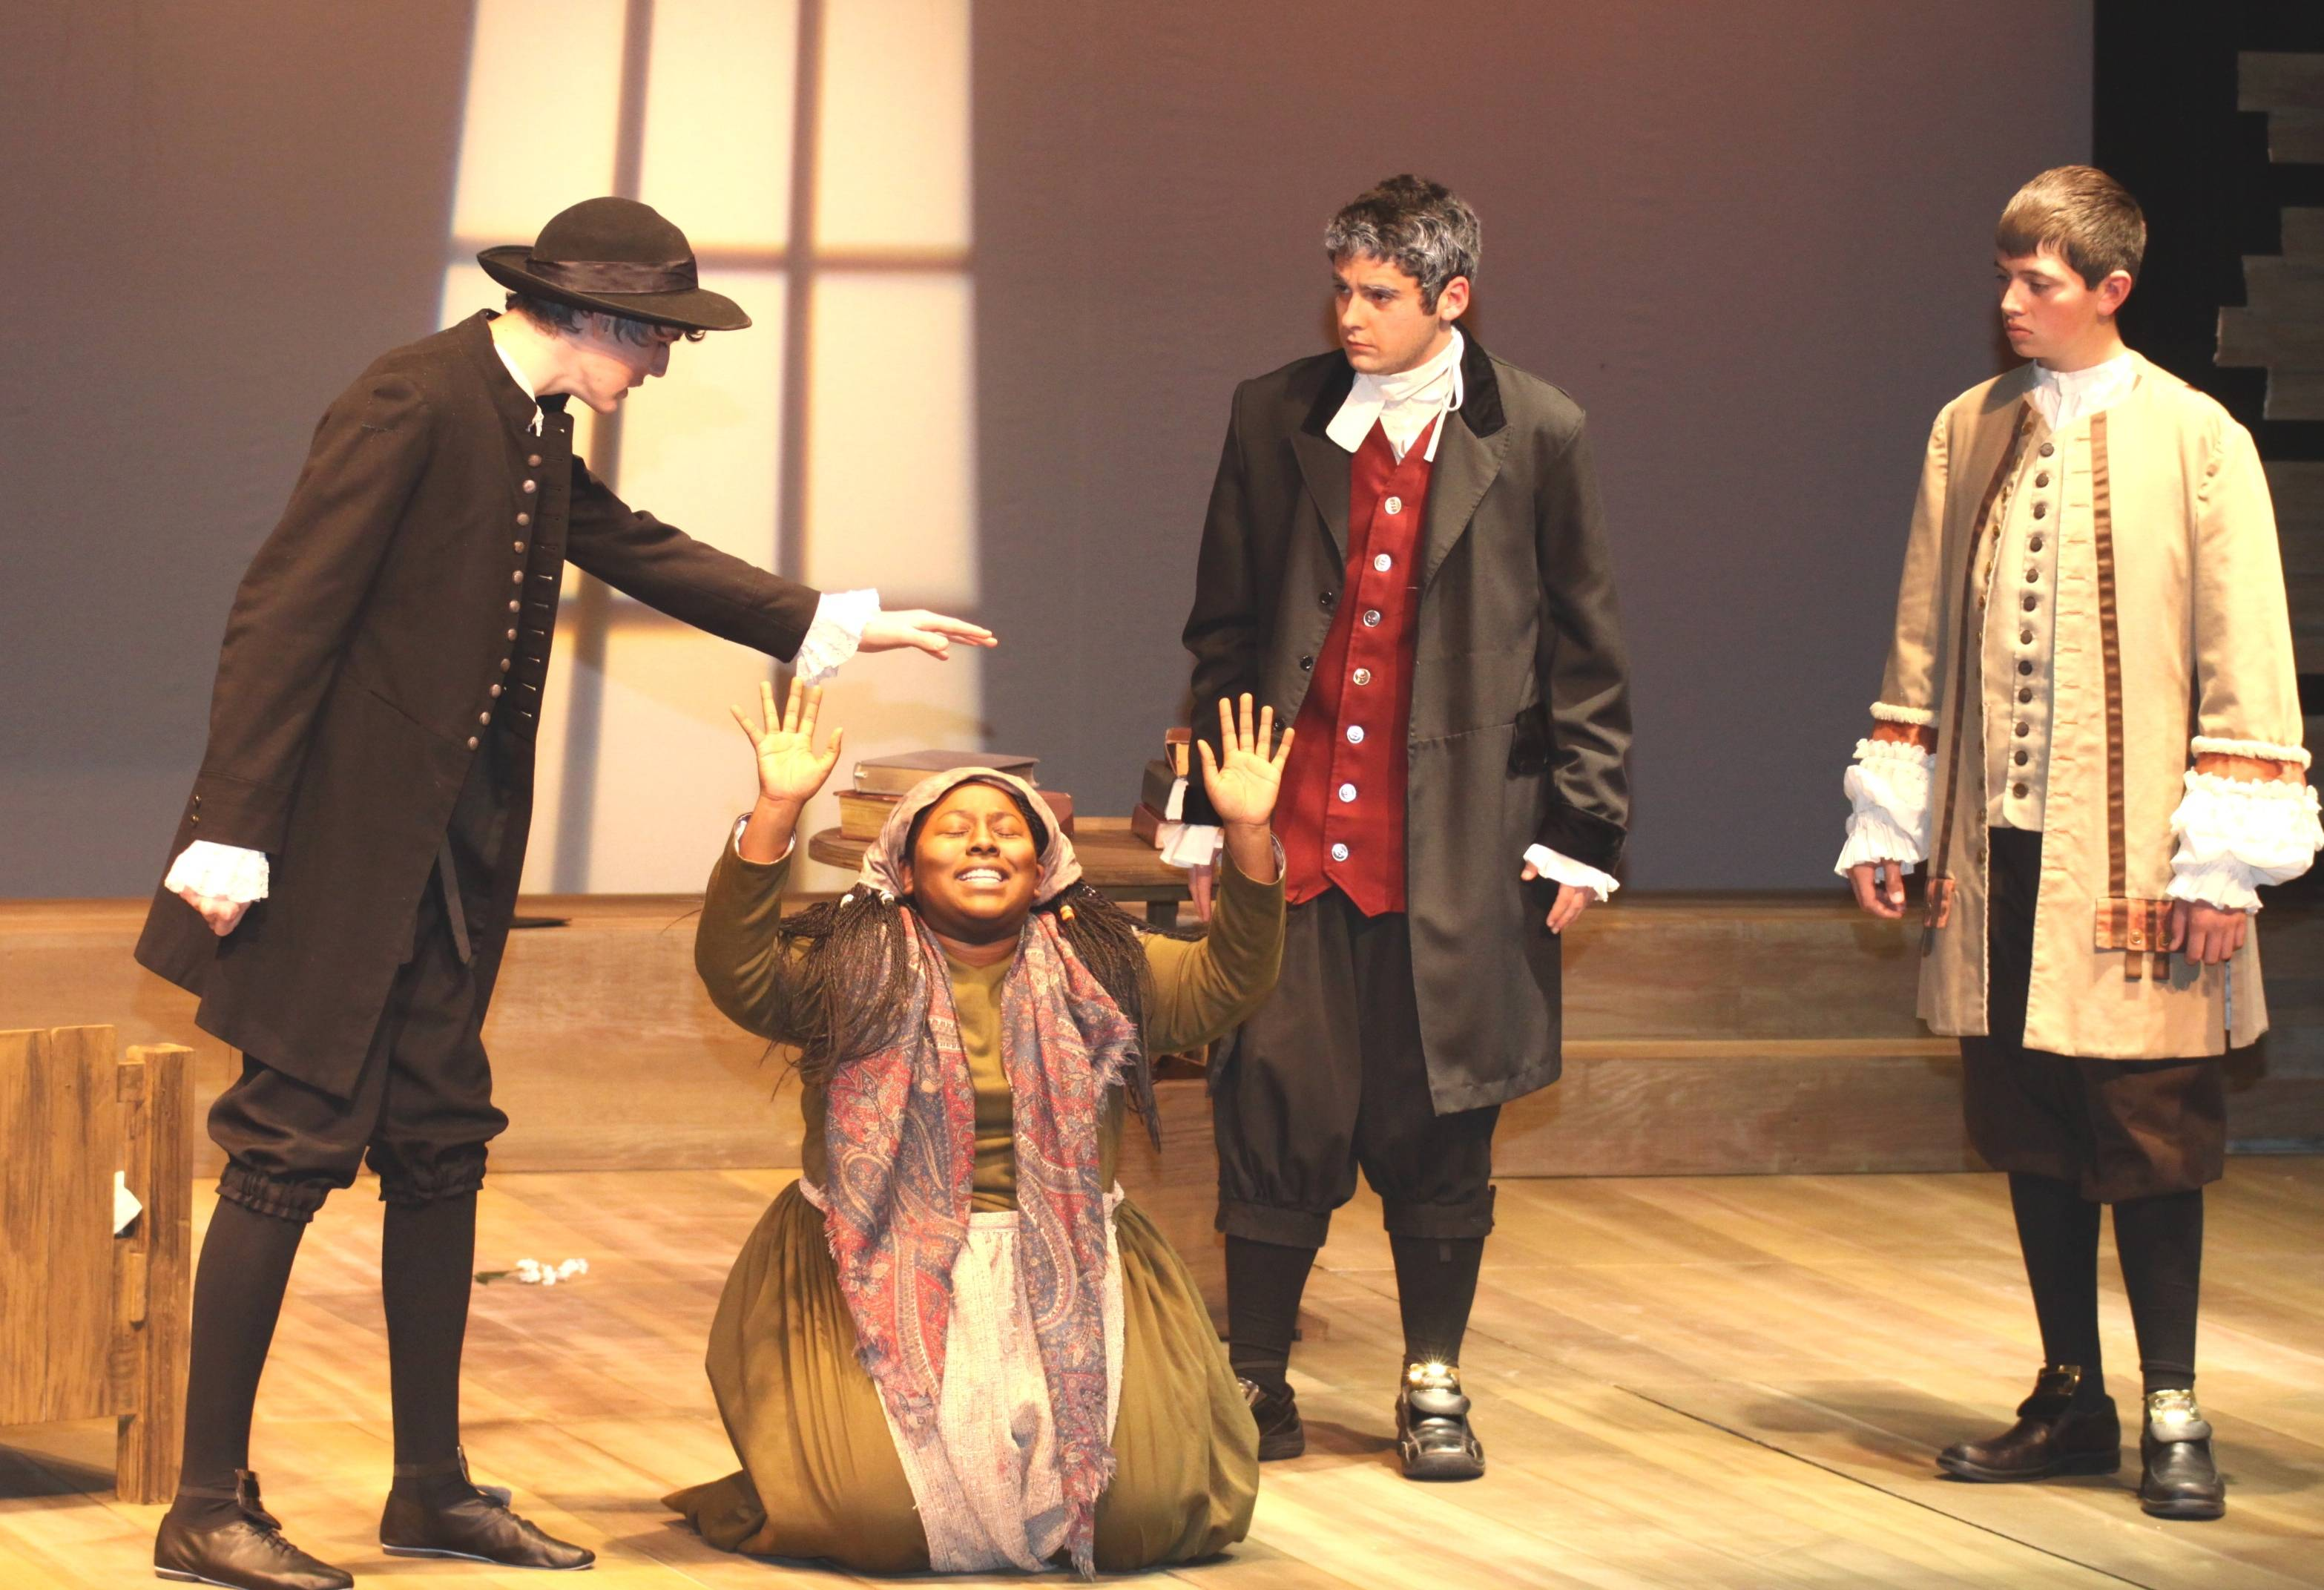 Reverend Hale(played by sophomore  Lucas Bennett) interrogates Tituba (played by senior Alyssa Kindell) as Reverend Parris (played by junior John Tasch) and Thomas Putnam (played by freshman Nick Martin) look on.